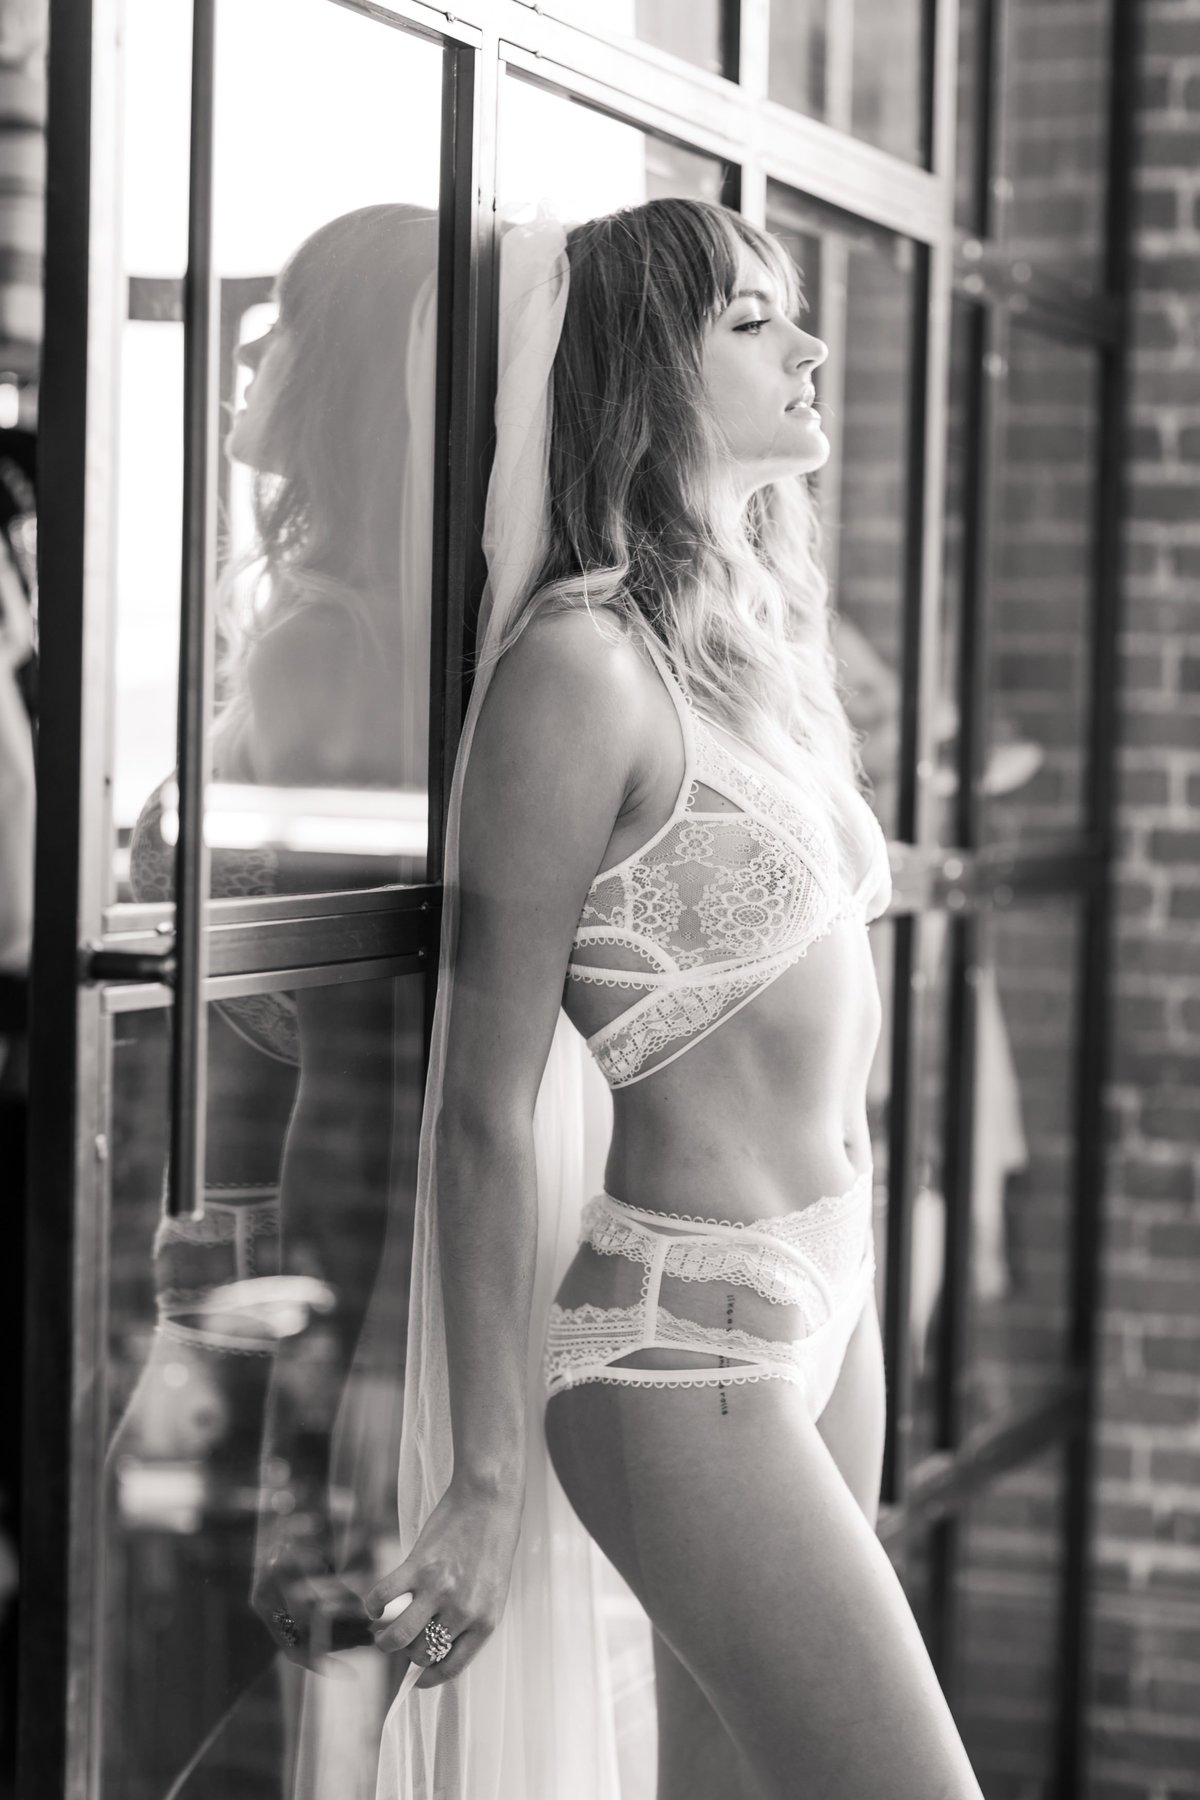 Bridal_Boudoir_Valorie_Darling_Photography - 79 of 100